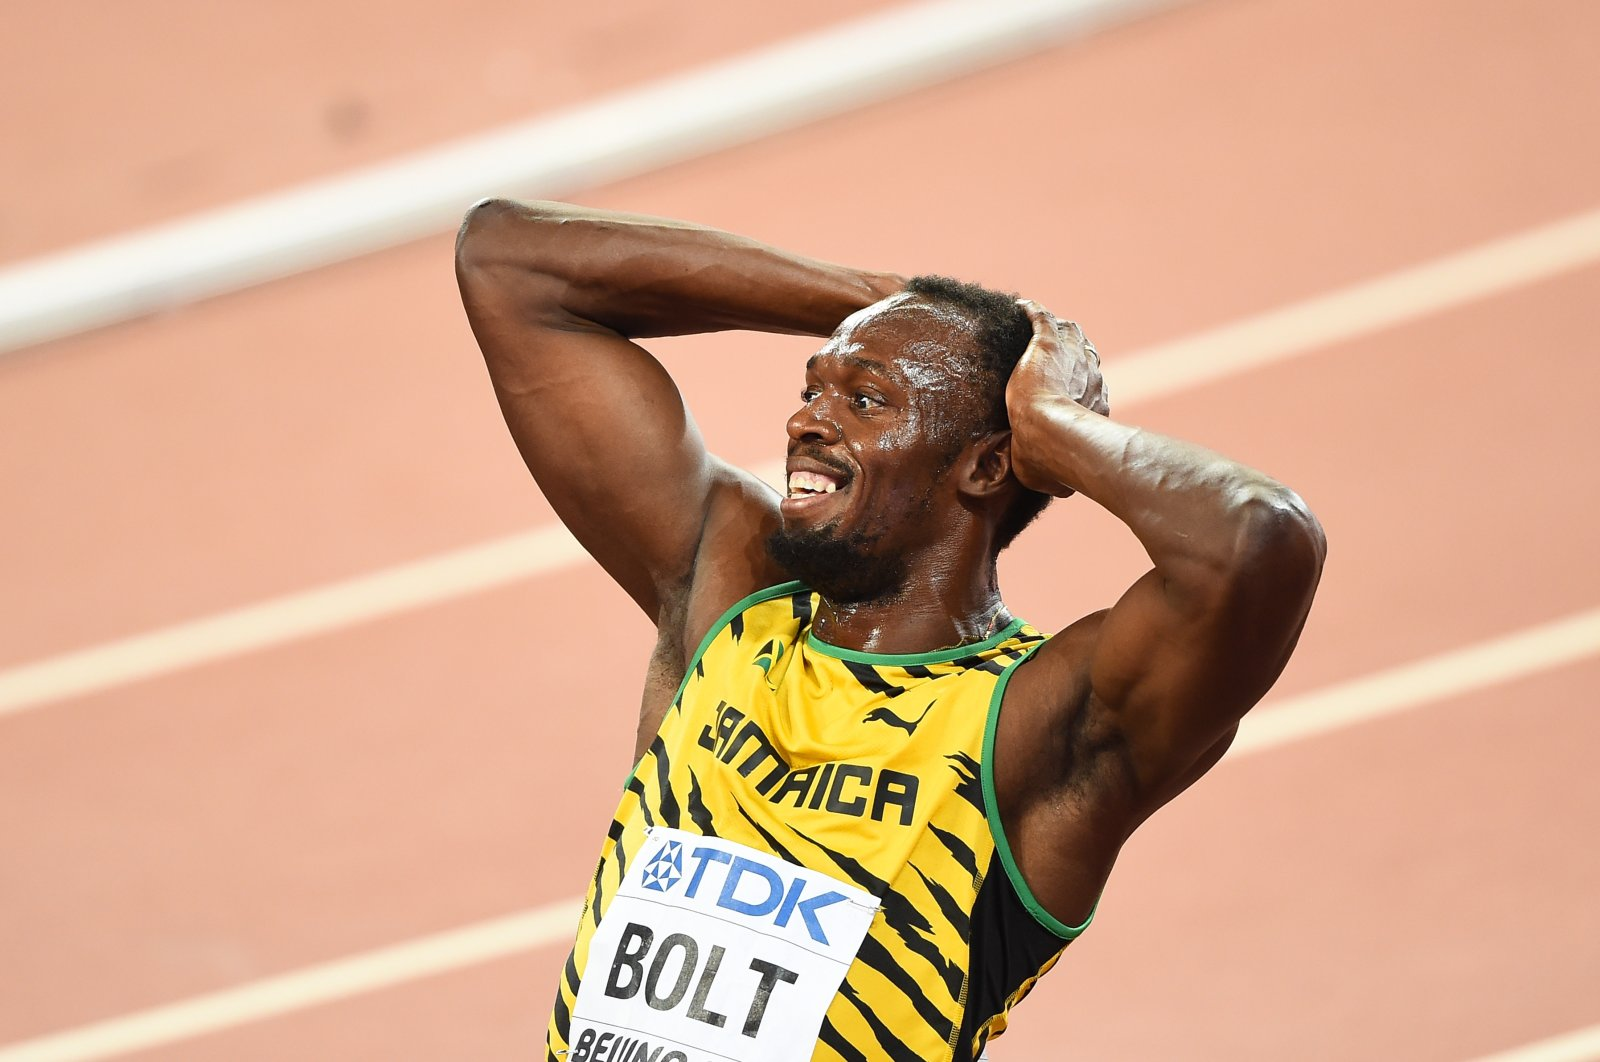 Usain Bolt reacts after winning a sprint race in Beijing, China, Aug. 29, 2015. (AA Photo)